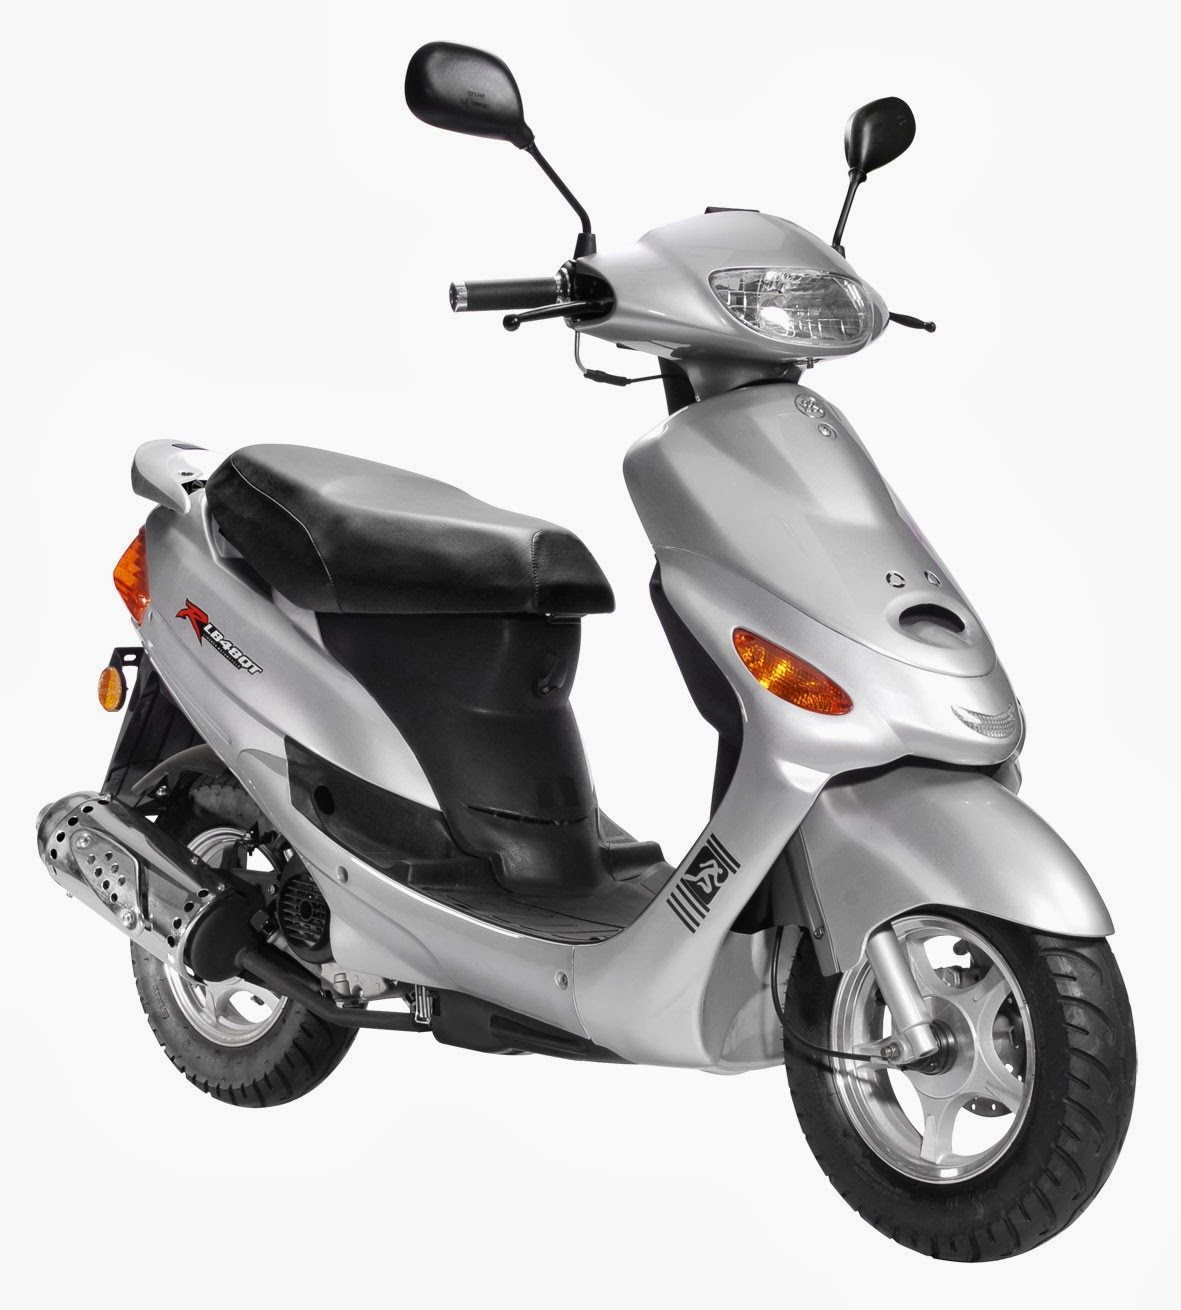 50cc Mopeds, 50cc Moped,50cc Gas Scooters, 50cc Gas Scooter, 49cc Moped, 49cc Gas Scooter. Welcome to our 50cc Moped and 50cc Gas Scooter section! You will find the latest models of 50cc Mopeds and 50cc Gas Scooters here. Our 50cc Mopeds and 50cc Gas Scooters are of the highest quality in the market. They are designed and tested by our expert customers before they come in the .